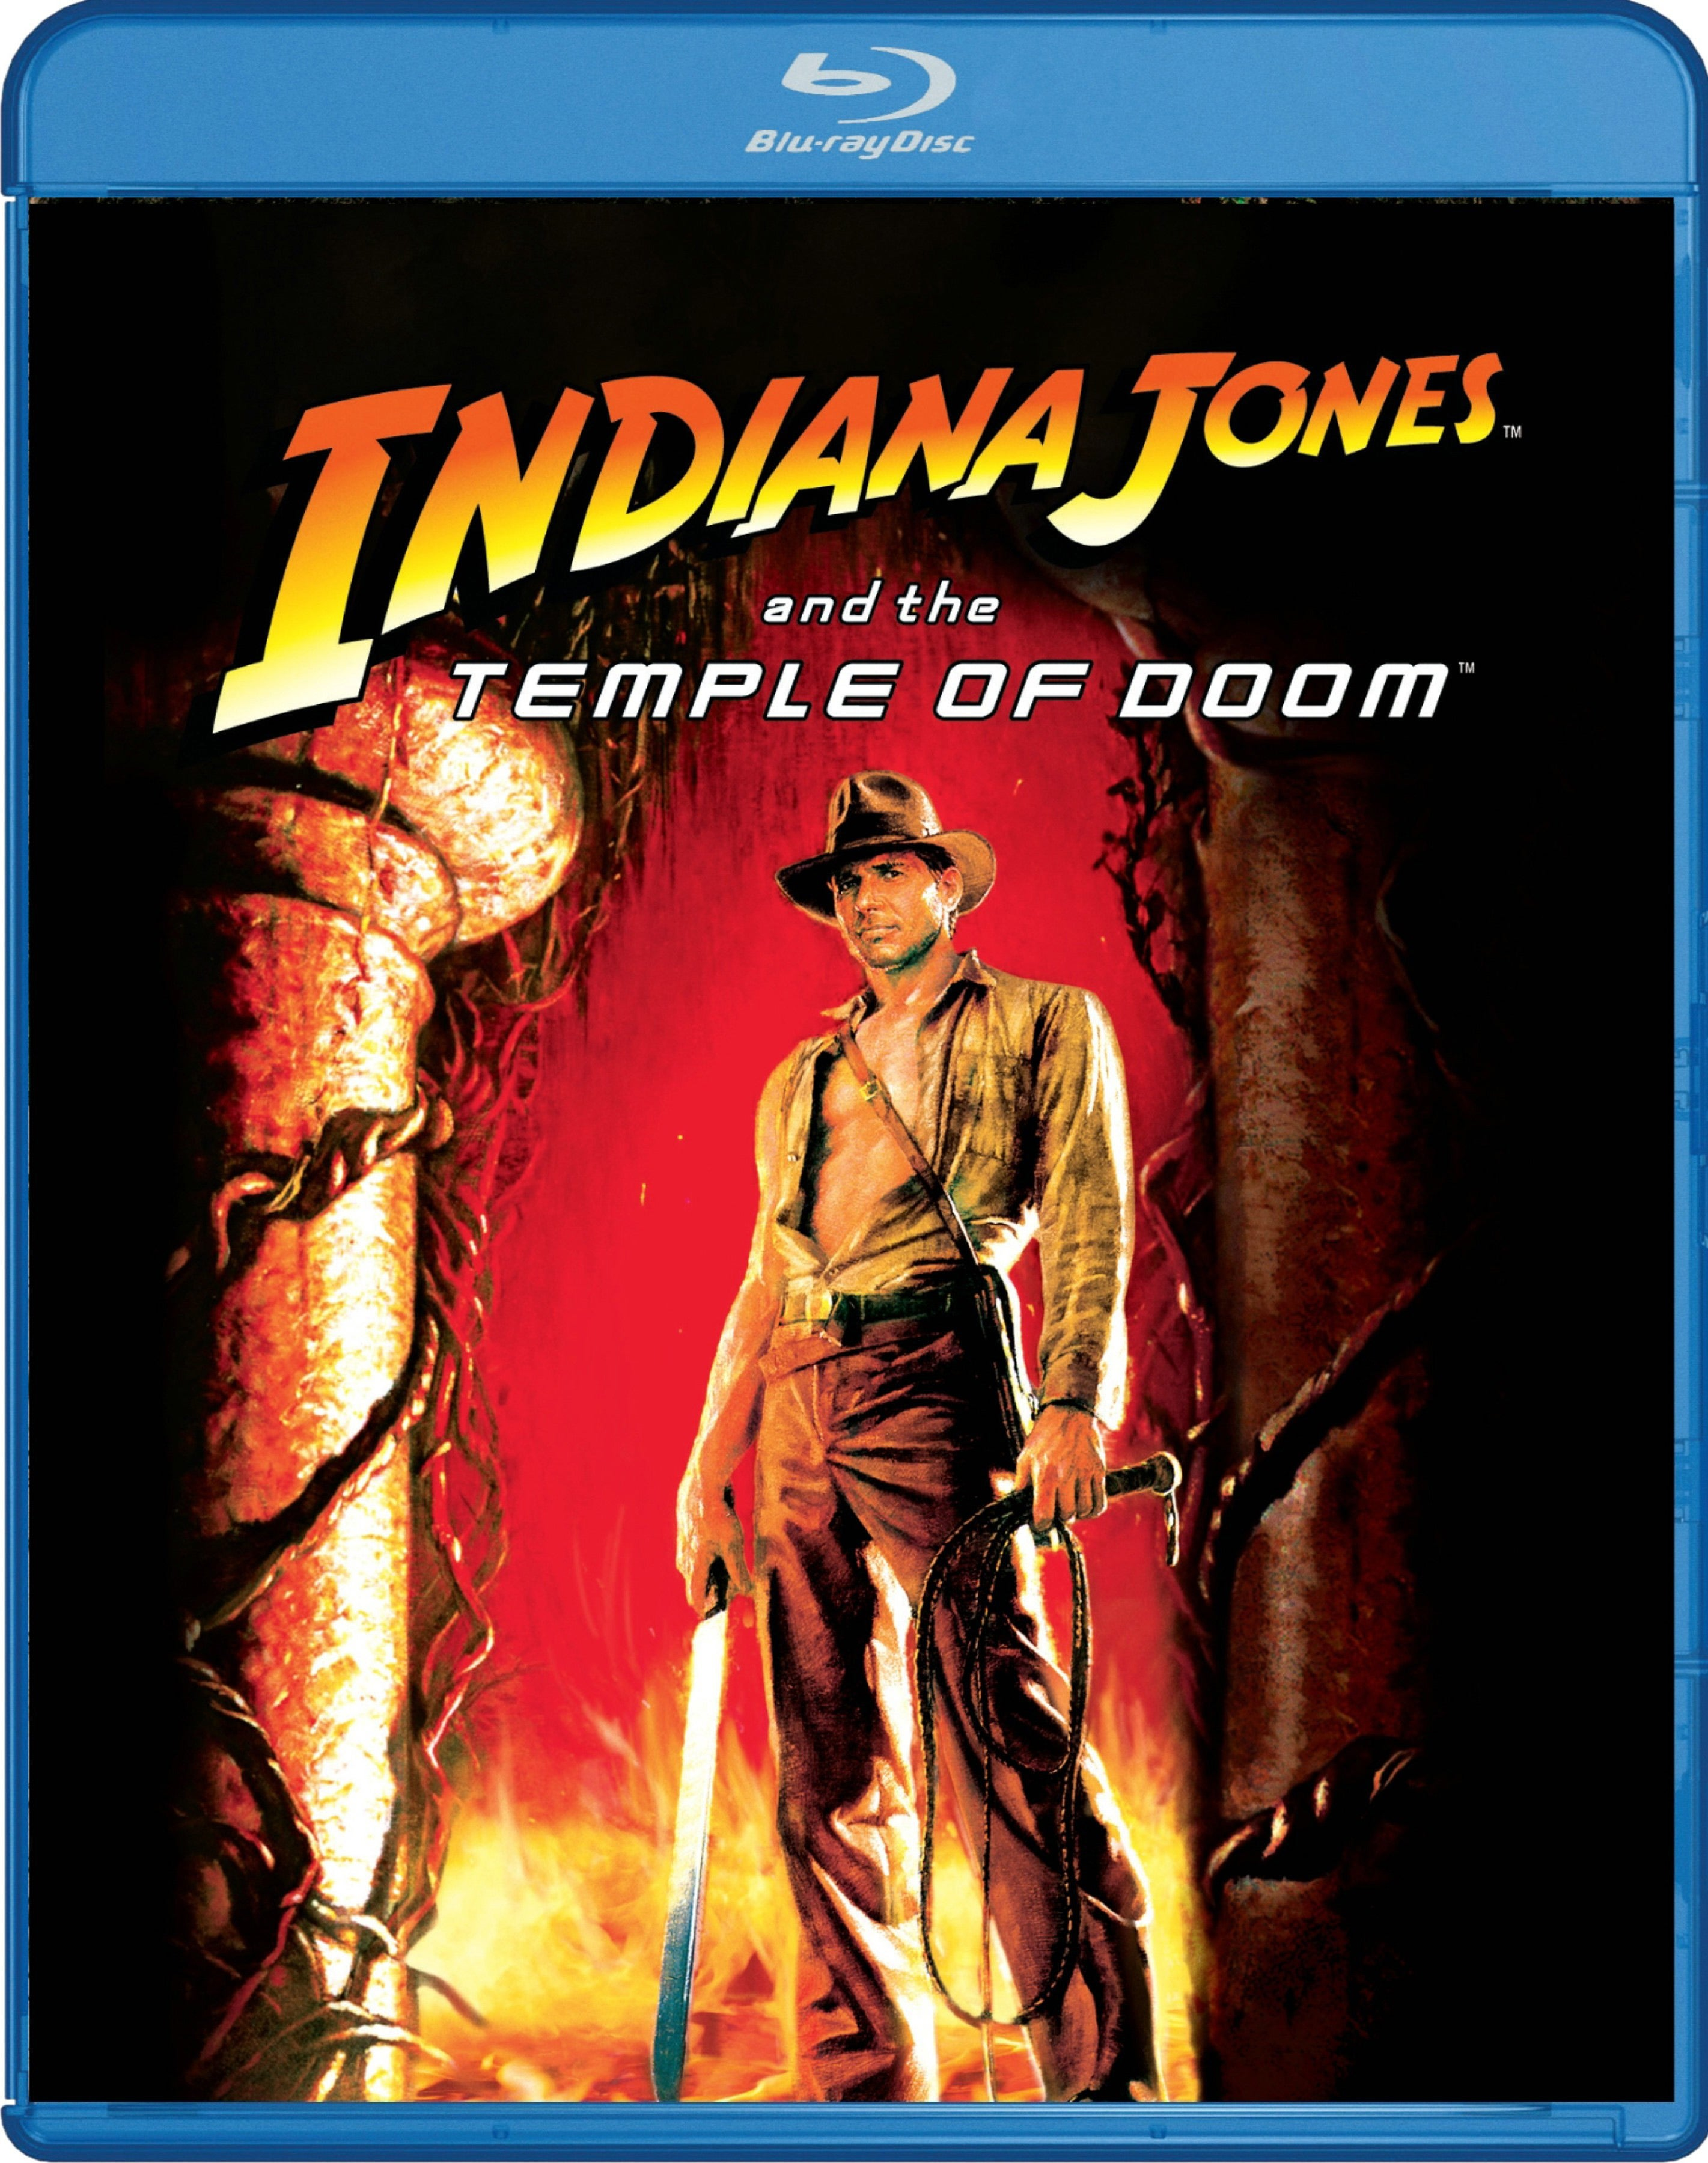 Indiana Jones and the Temple of Doom (Blu-ray Disc)